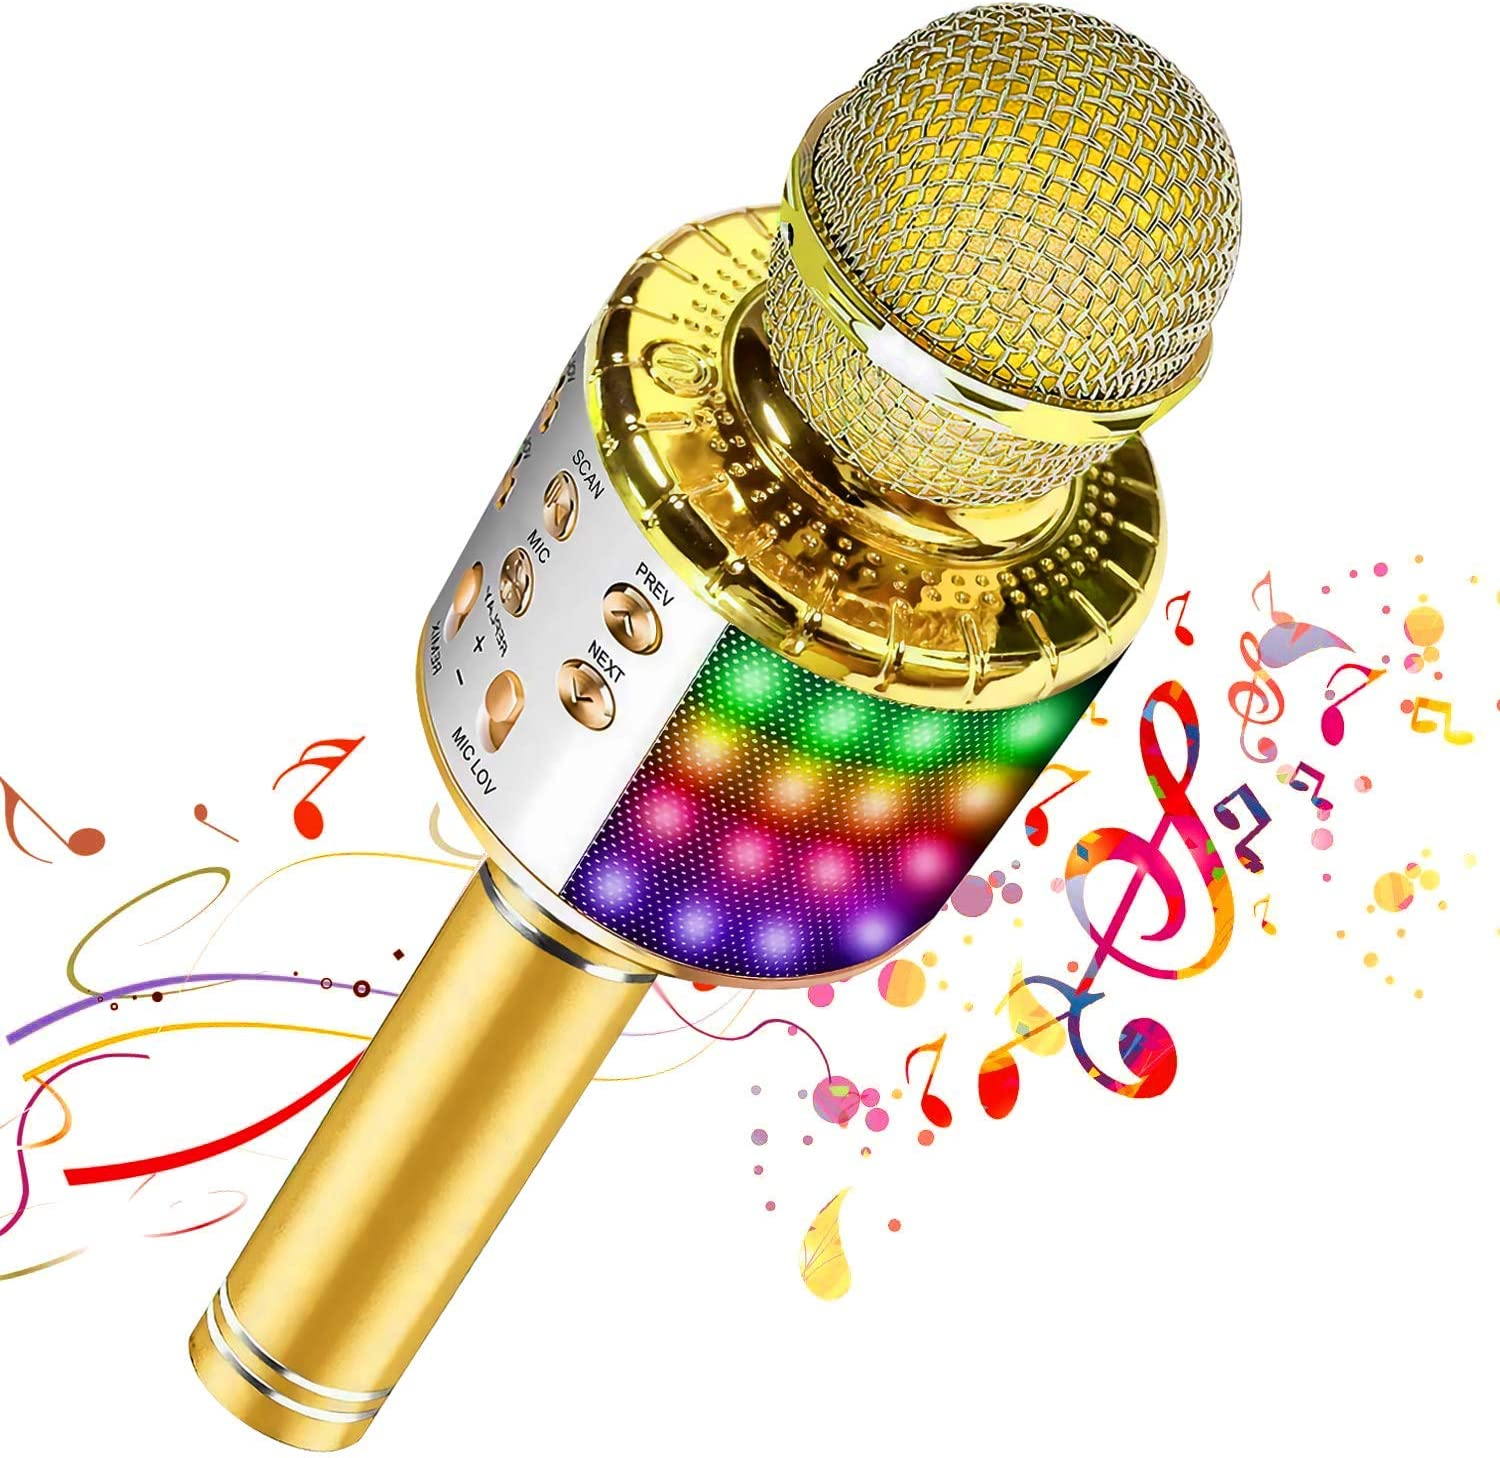 Bluetooth Wireless Karaoke Microphone with Multicolored LED Lights, Portable 4 in 1 Karaoke Machine Microphone for Adult Kids, for Android/iPhone/PC (Gold)